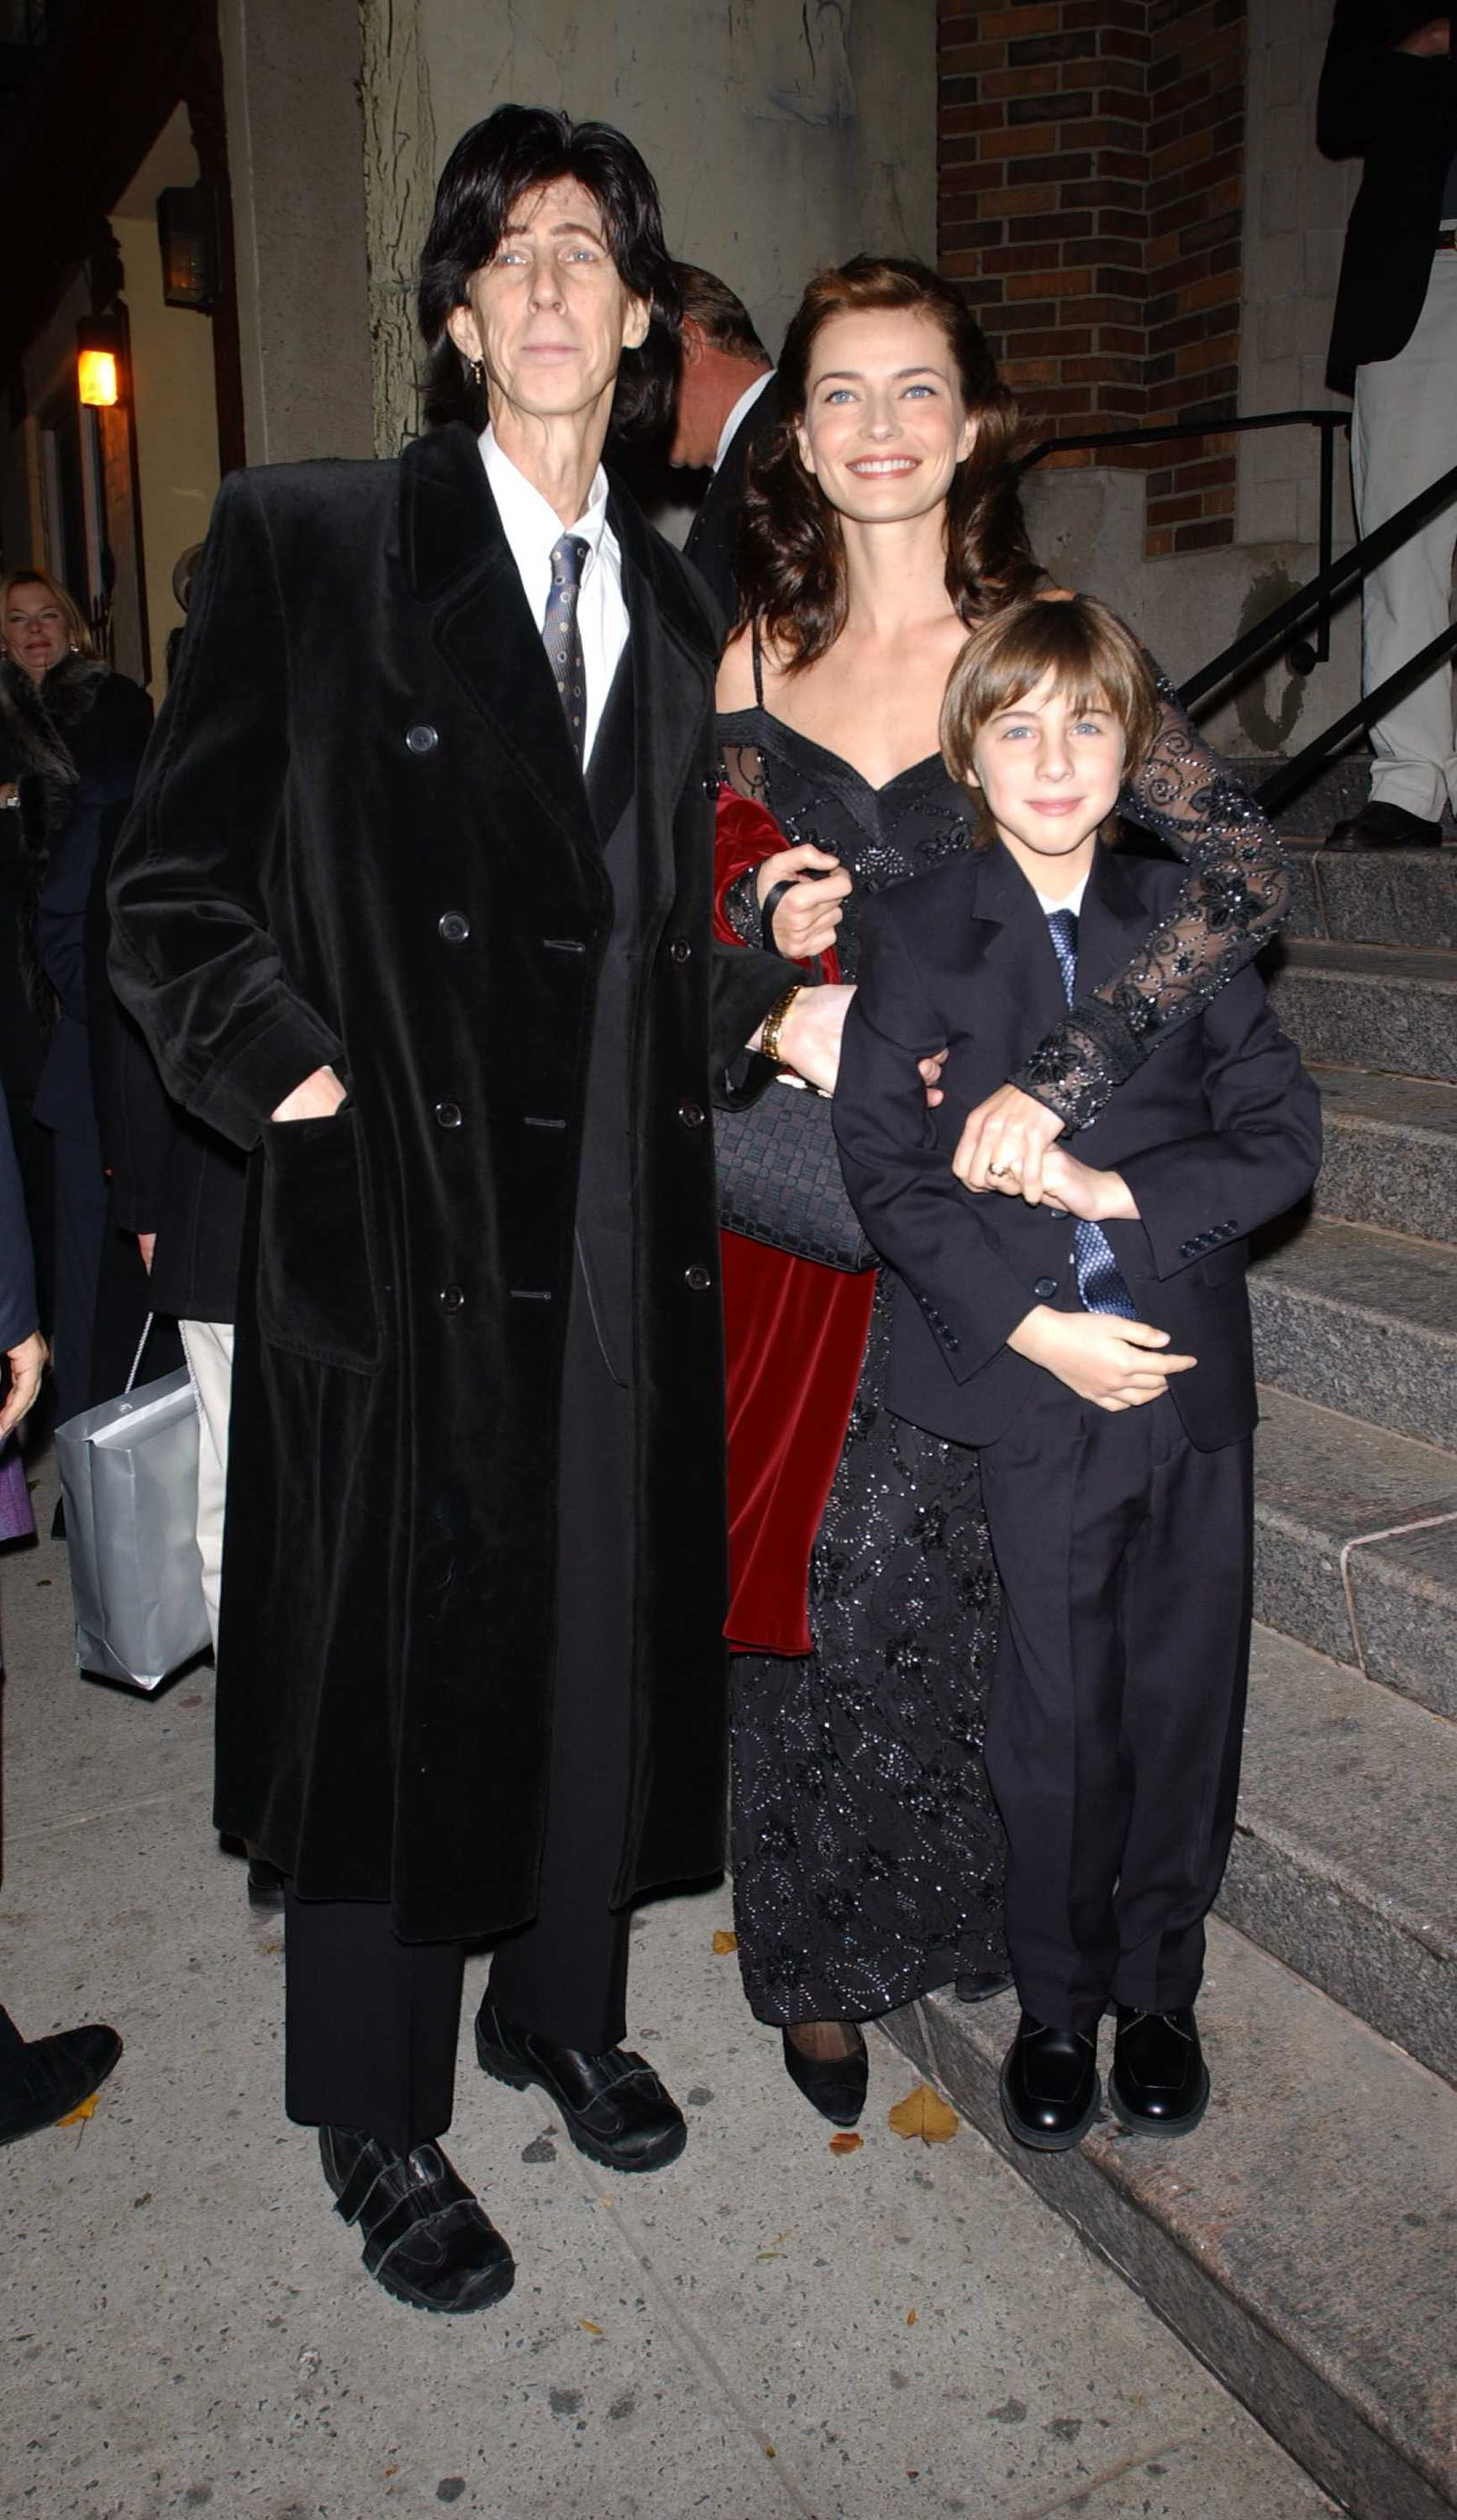 Late Rick Ocassick, Paulina Porizkova and son Jonathan at the Holy Trinty Archdiocesian Cathedral on November 20, 2001 | Photo: Getty Images